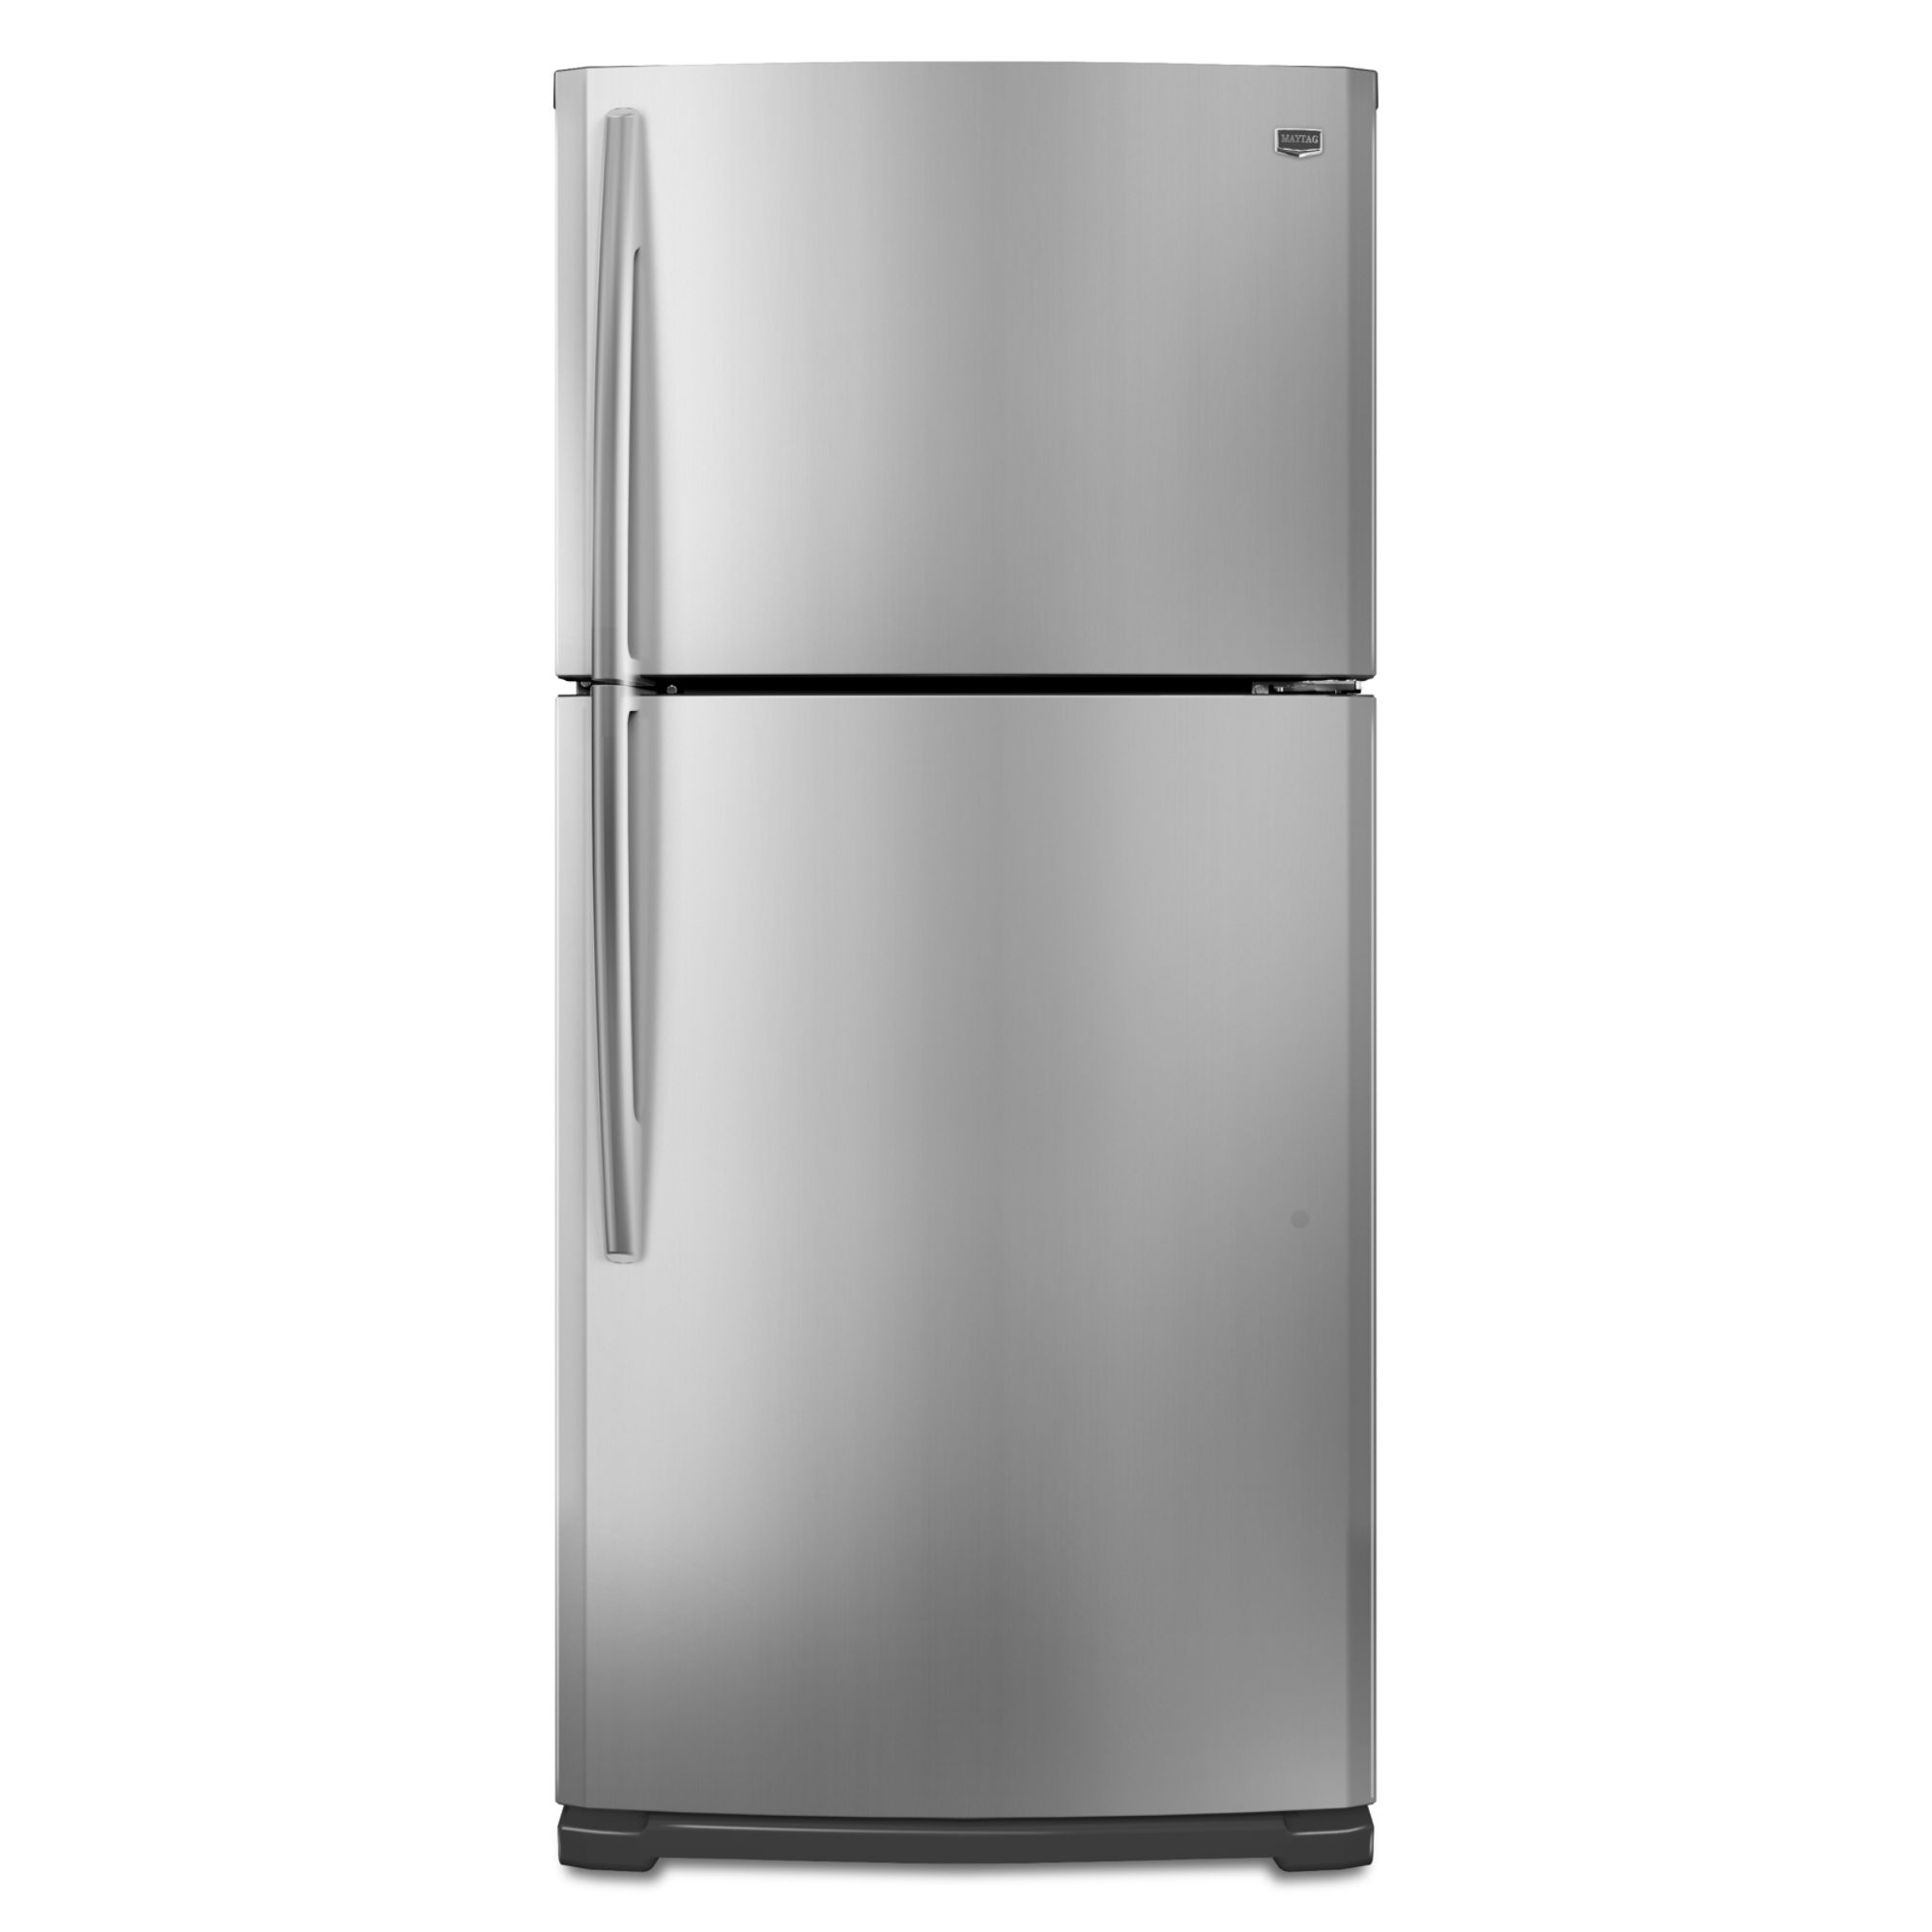 18.9 cu. ft. Top-Freezer Refrigerator w/ Strongbox™ Door Bins -